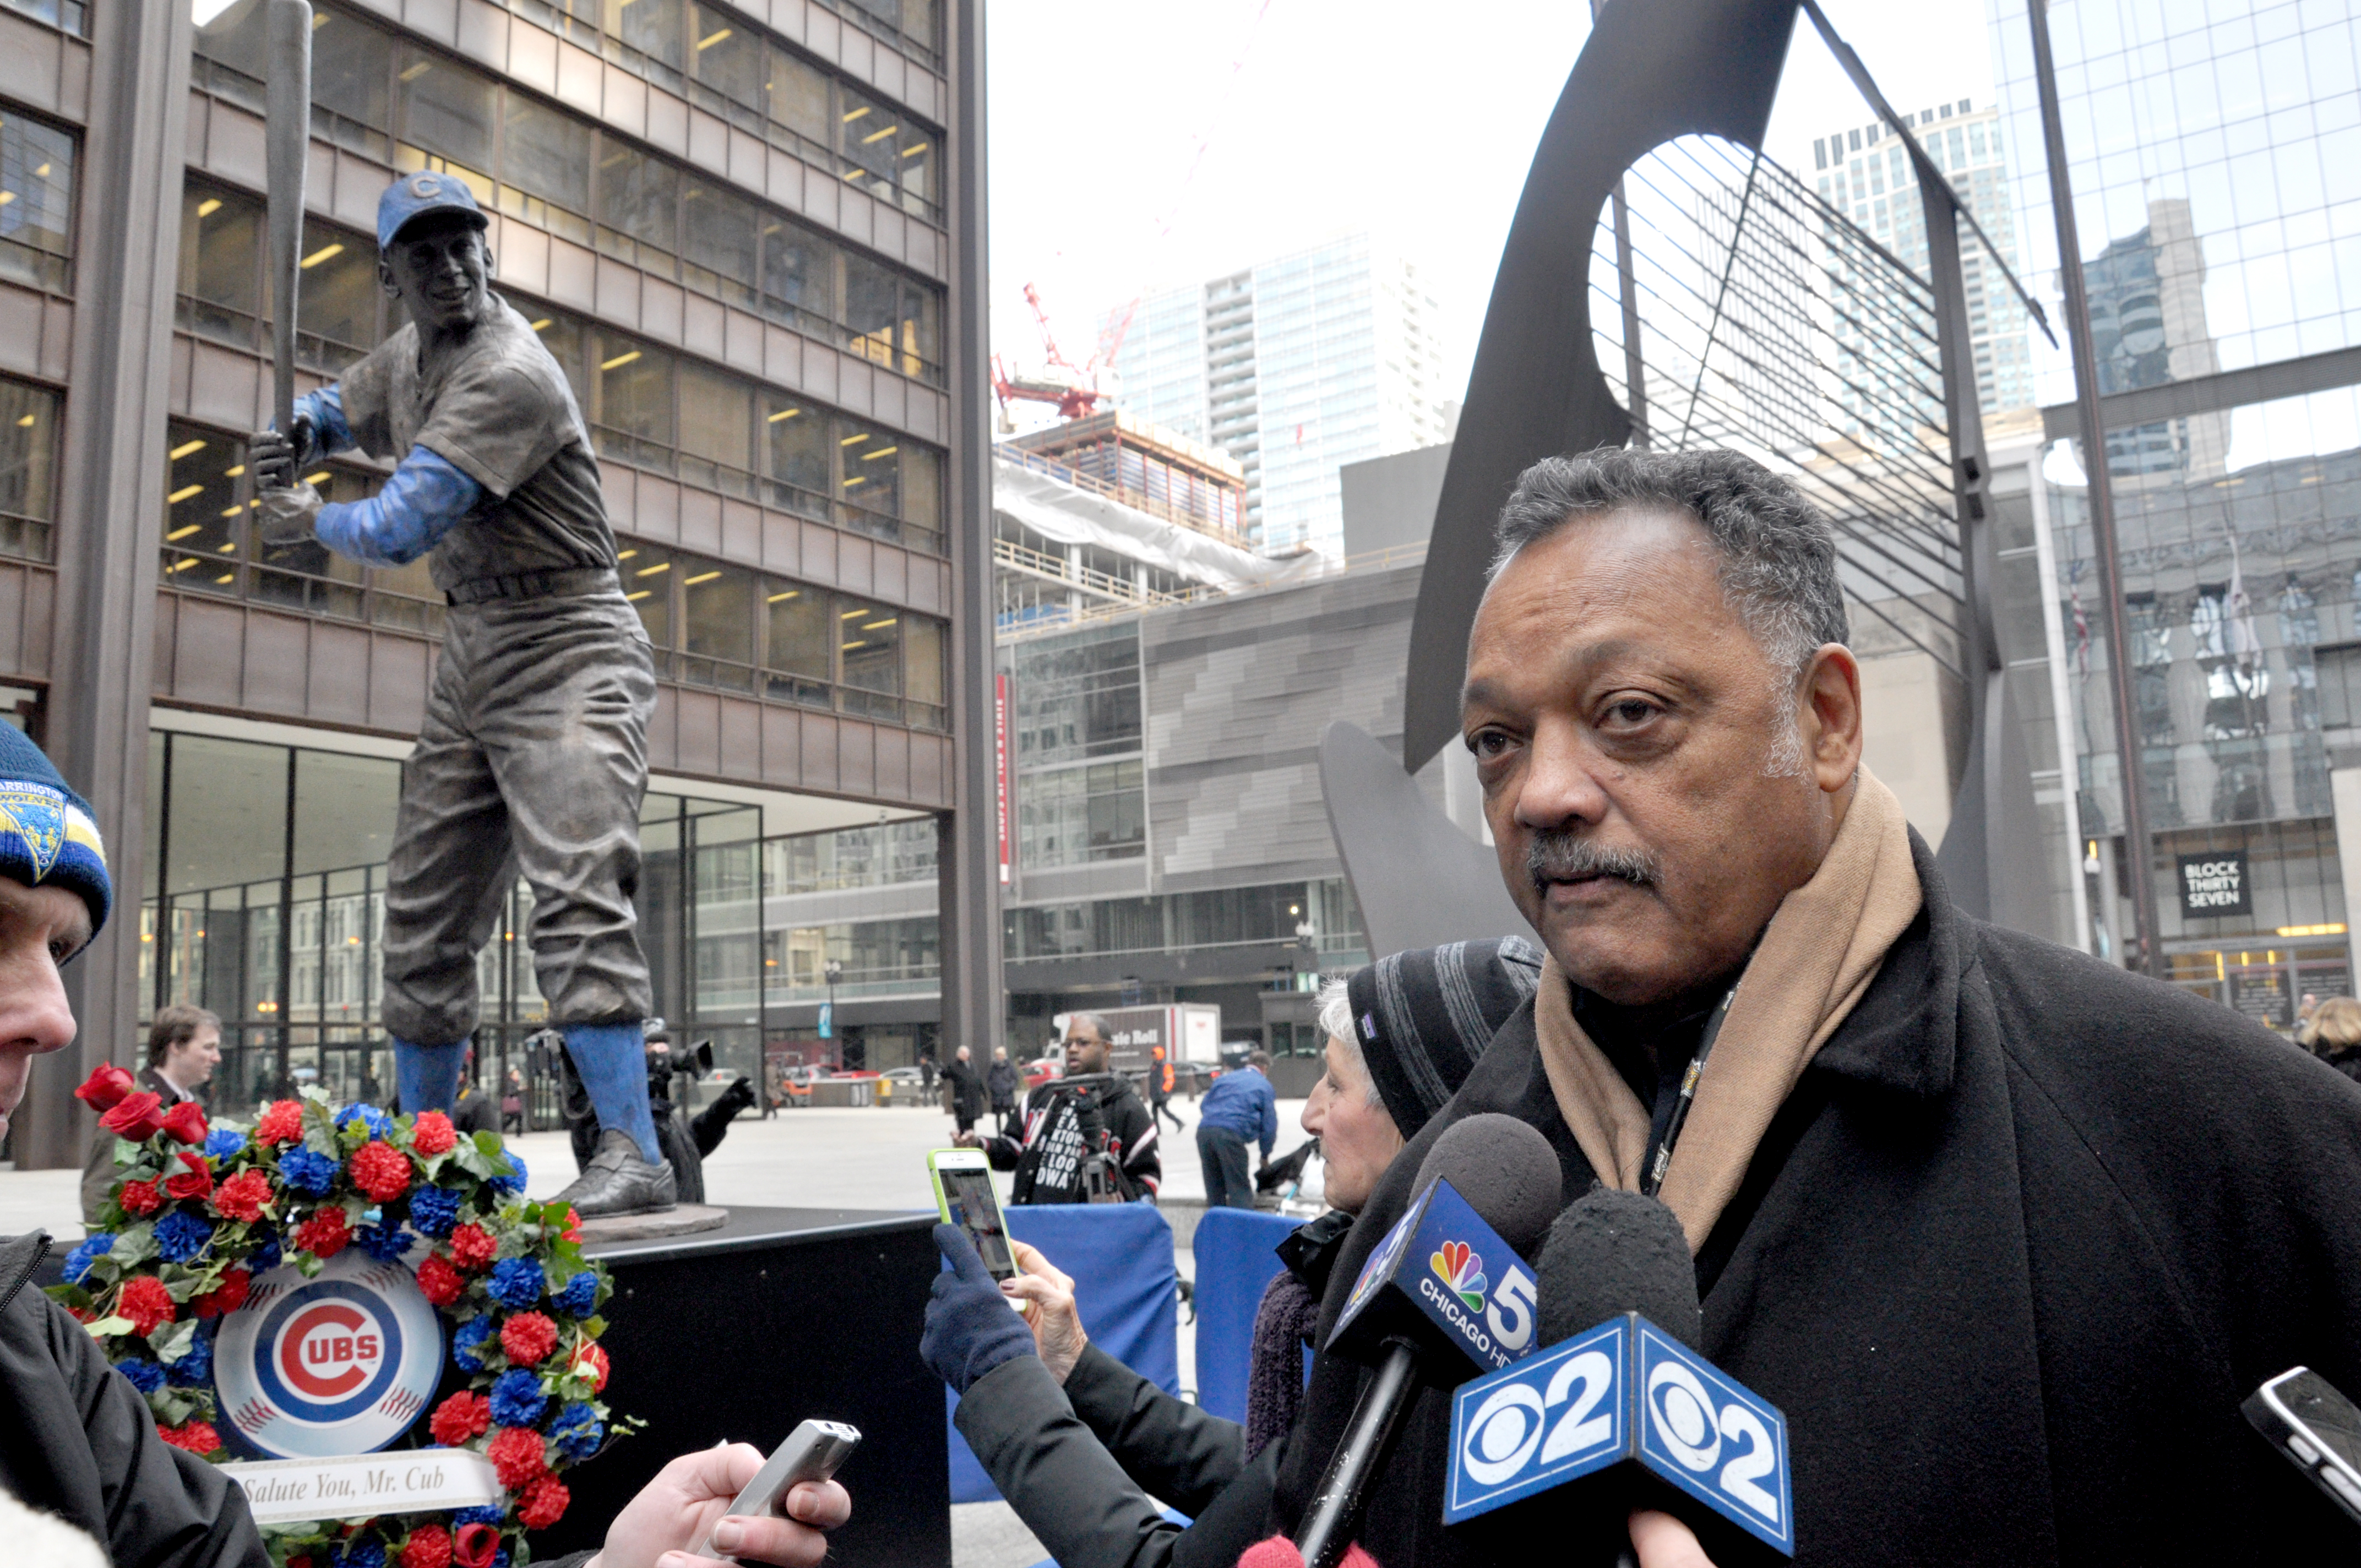 Ernie Banks statue stand at Chicago's Daley Plaza through Saturday, January 31, 2015